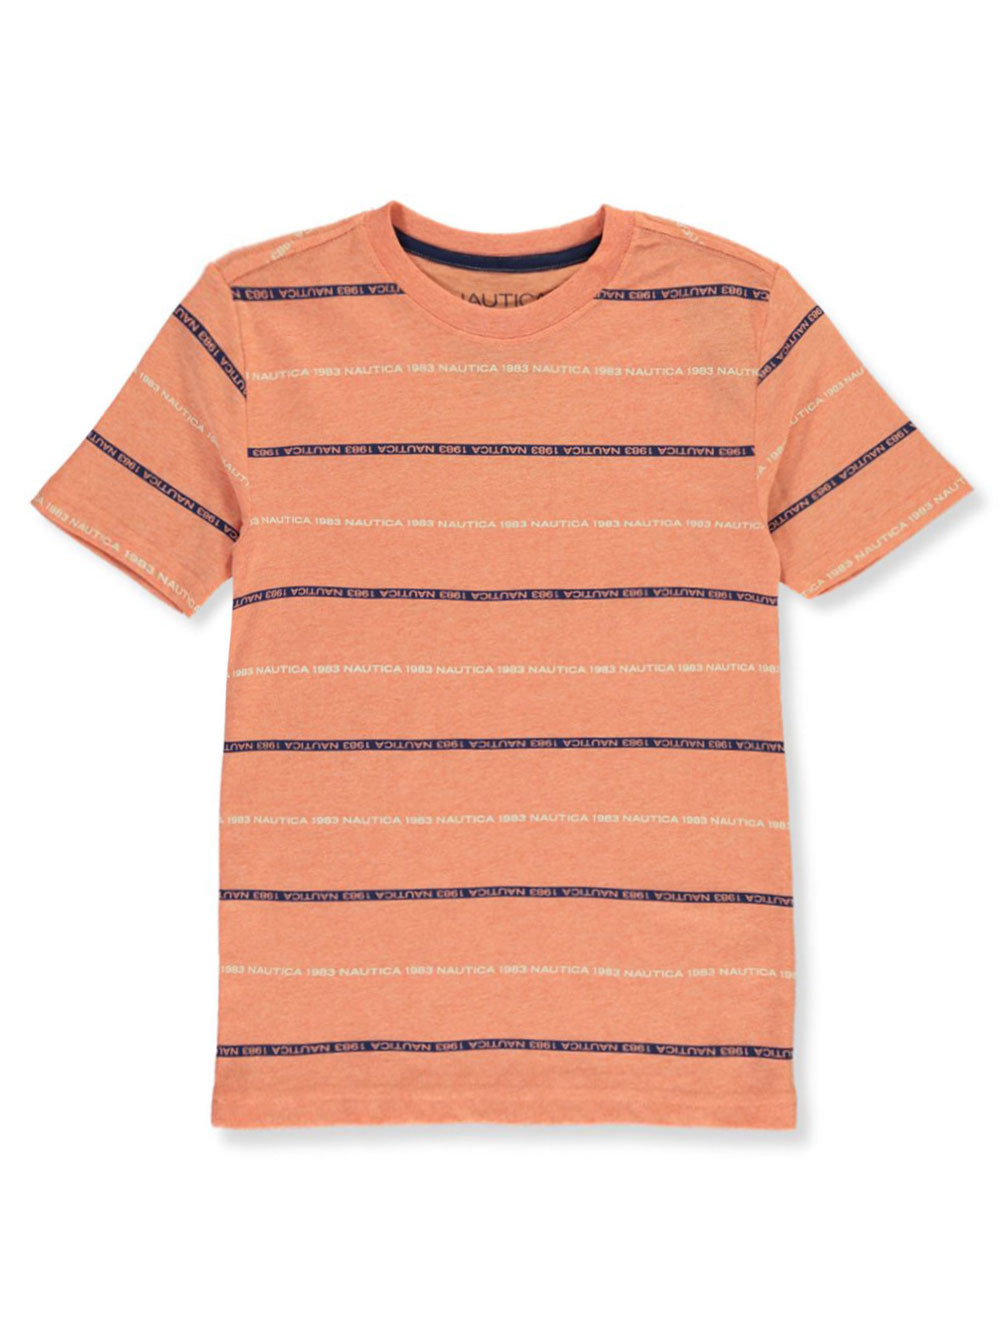 Medium Orange T-Shirts